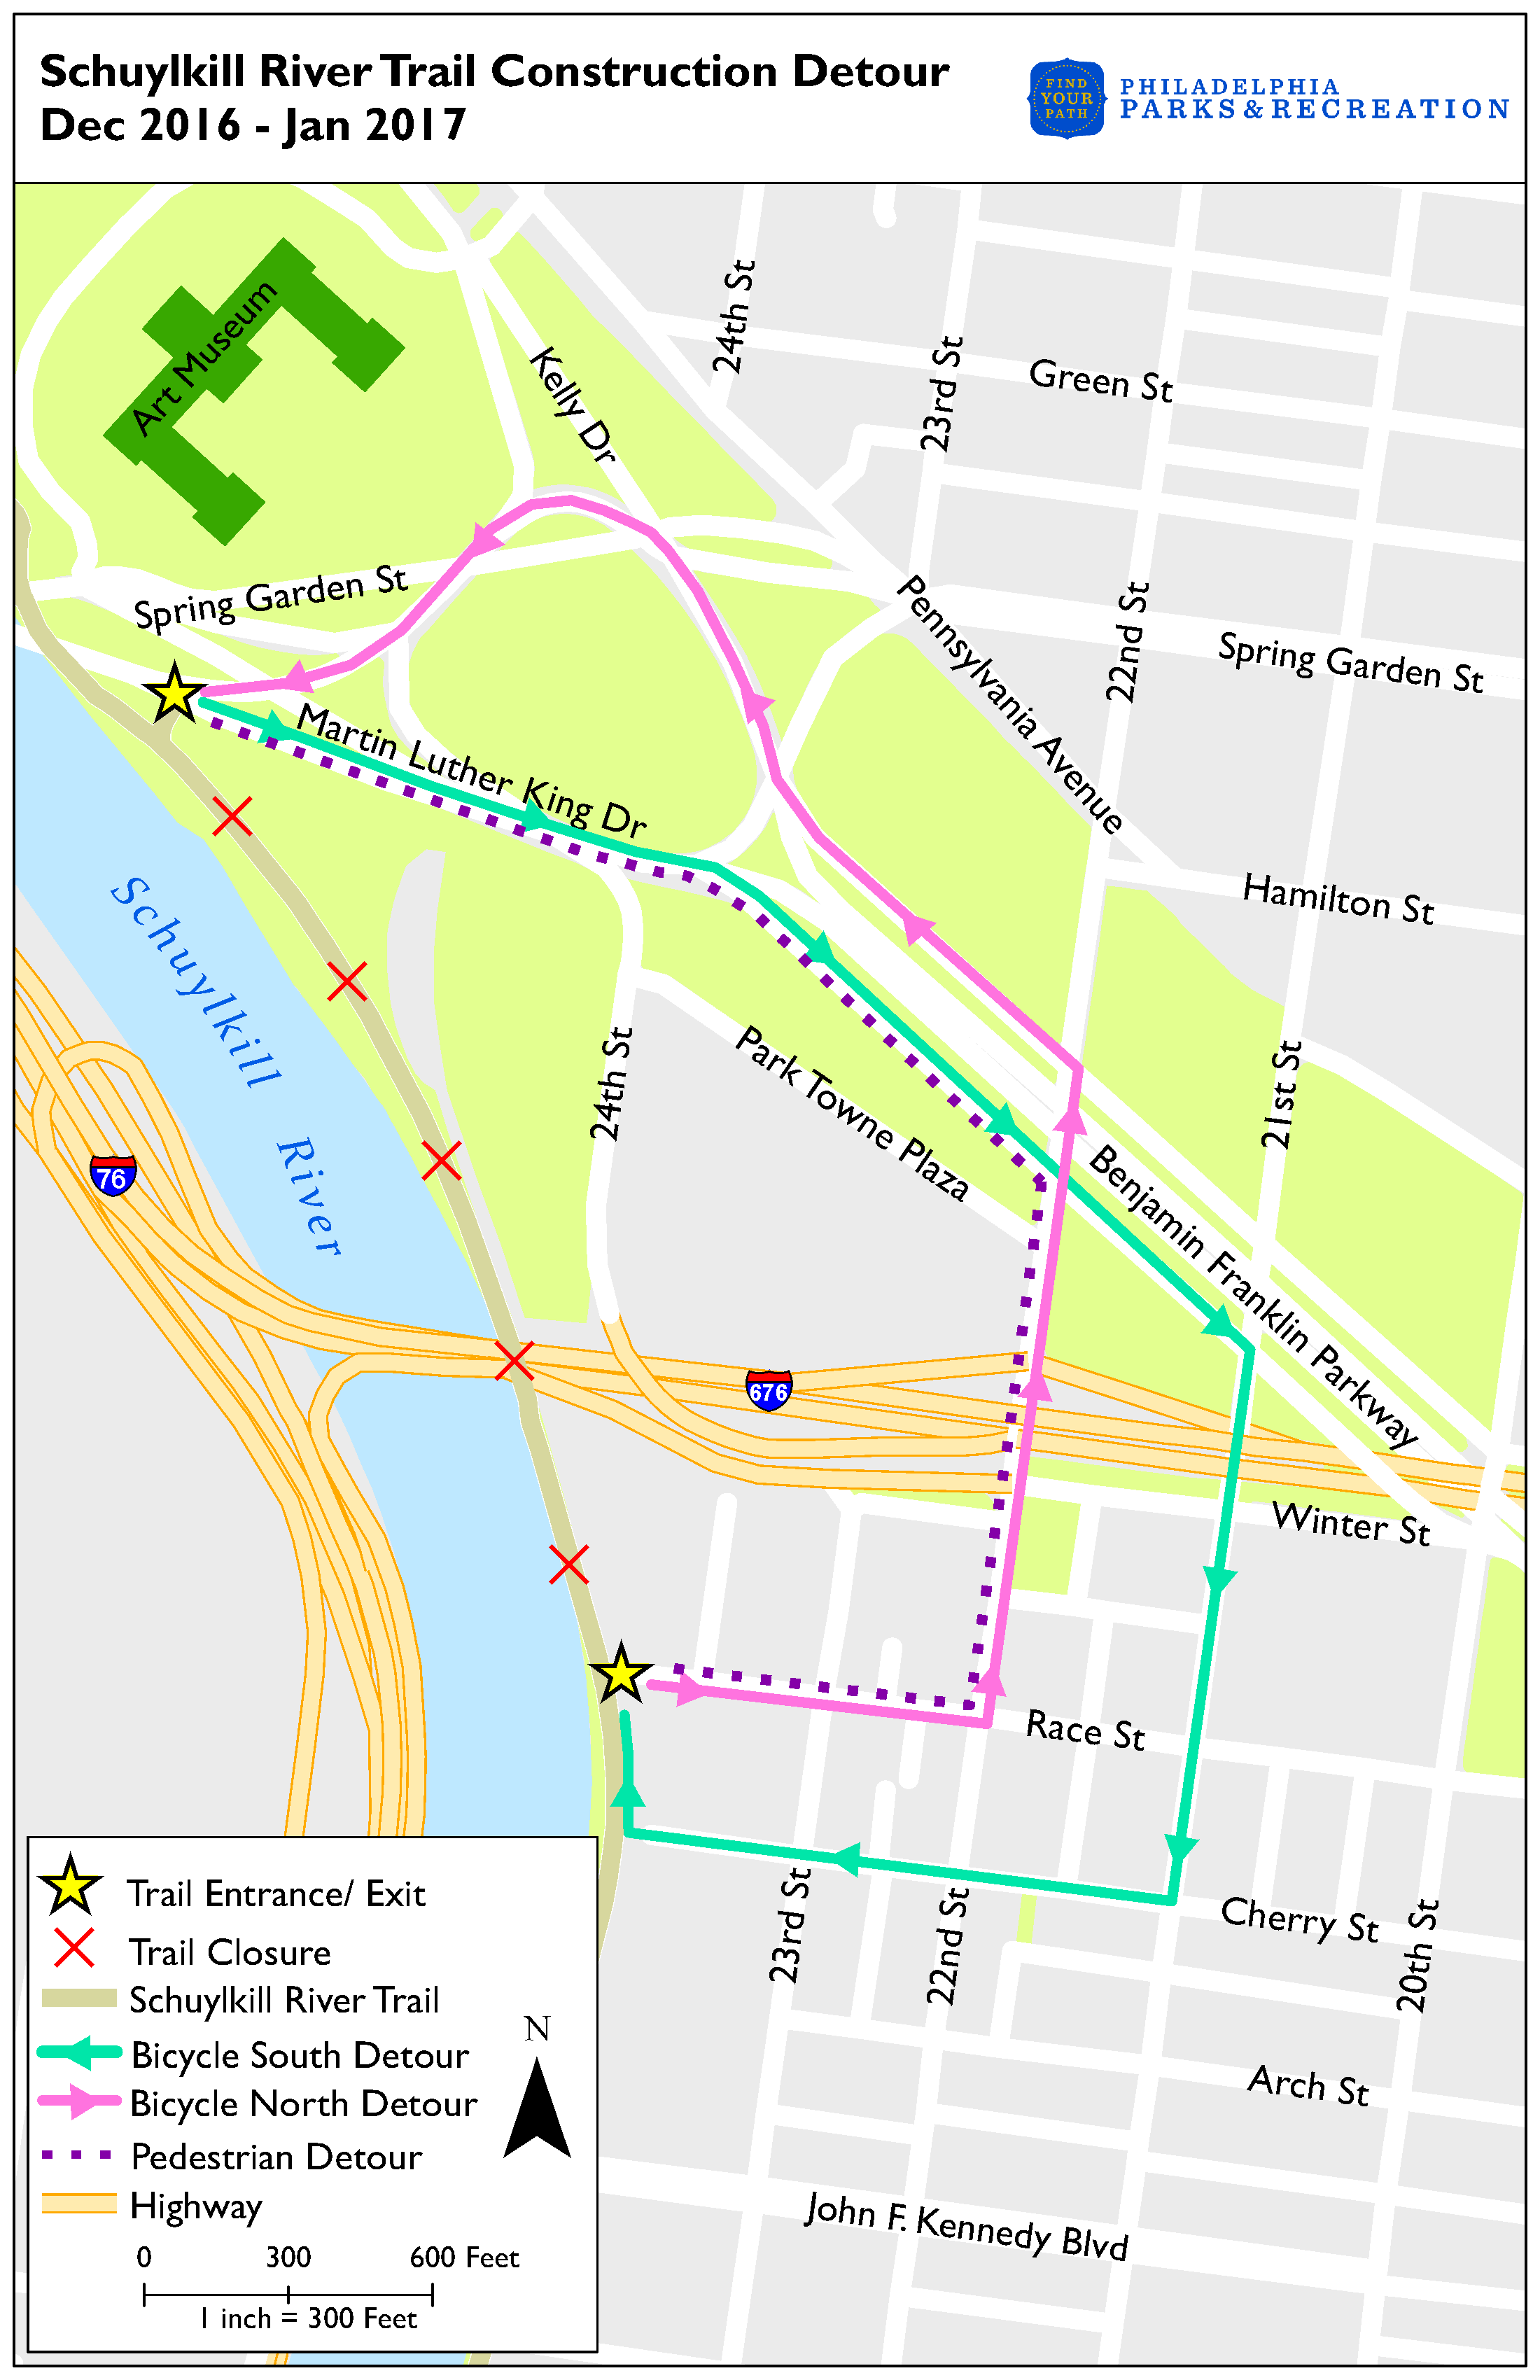 Update on SRT Closure Between MLK Drive & Race Street with ... on map of phila transportation, map of phila airport, map of phila restaurants,